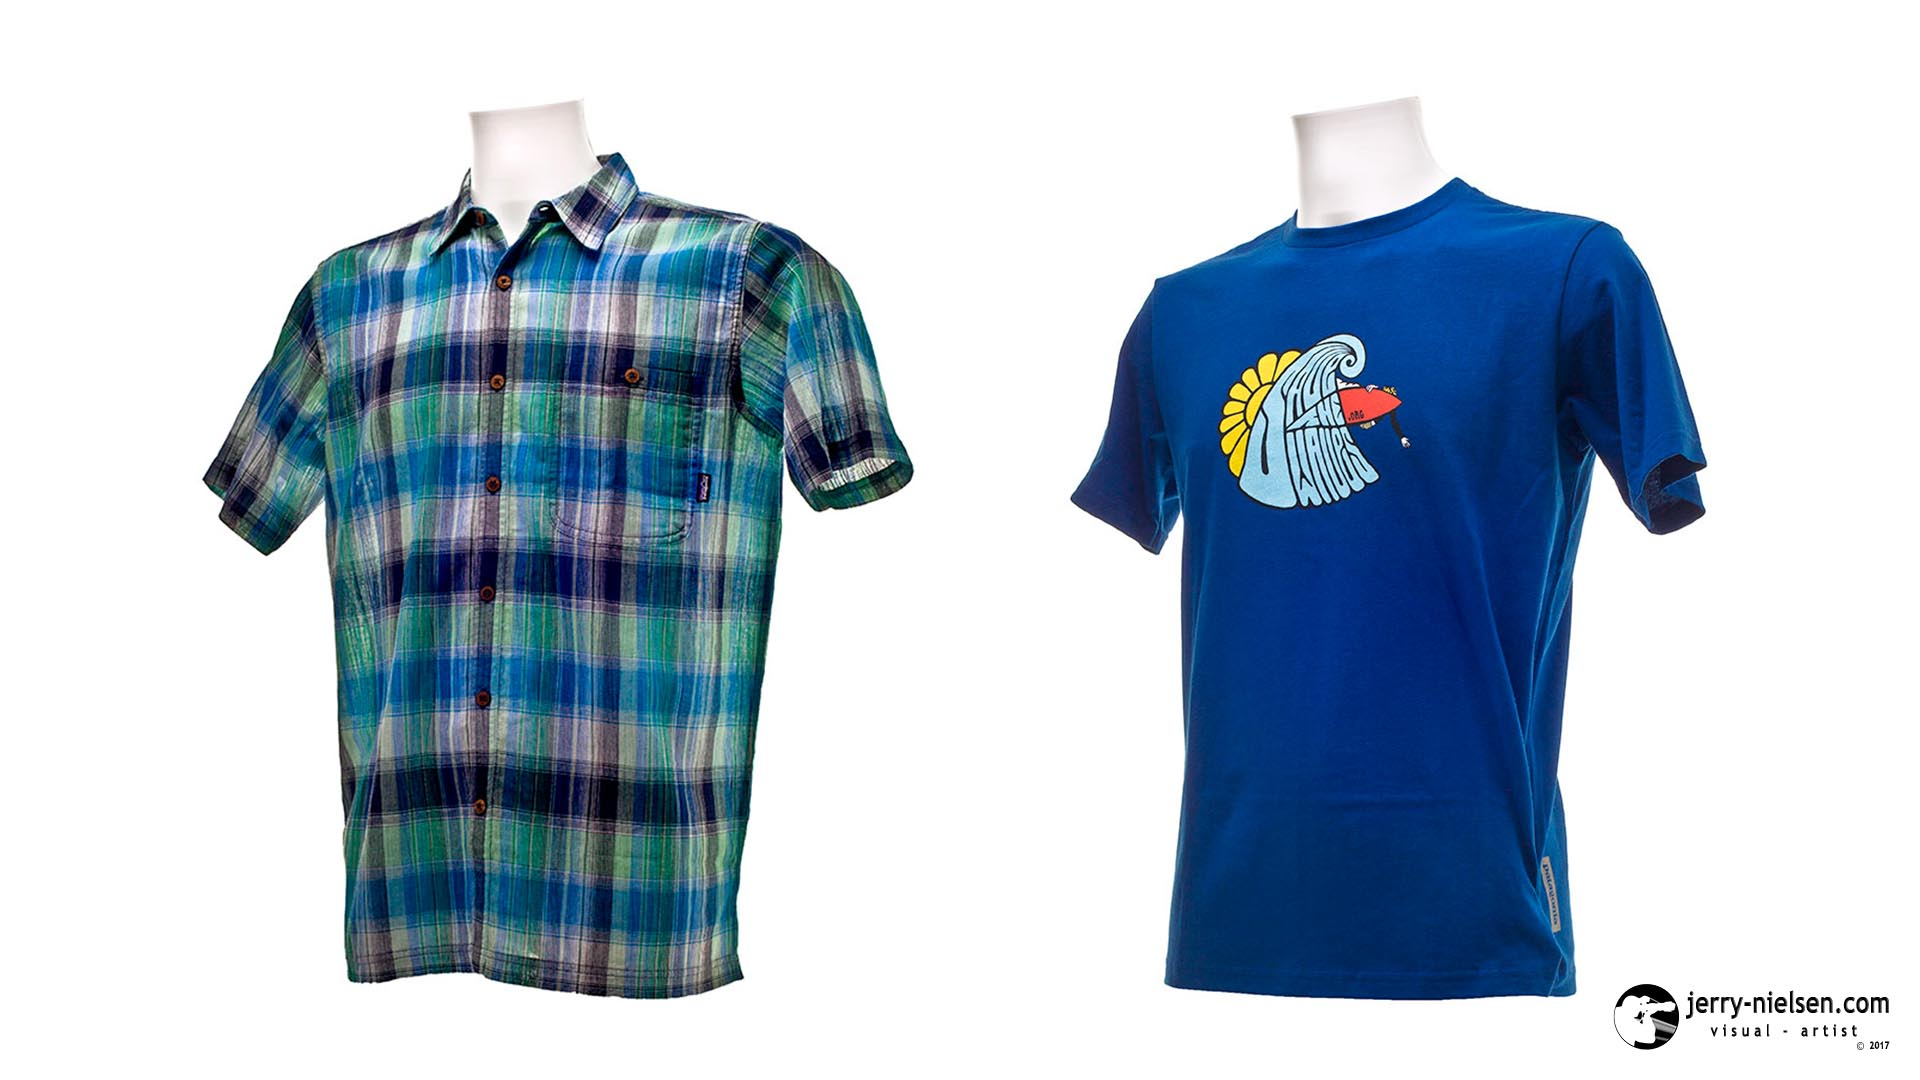 Male Patagonia Shirt and T-shirt